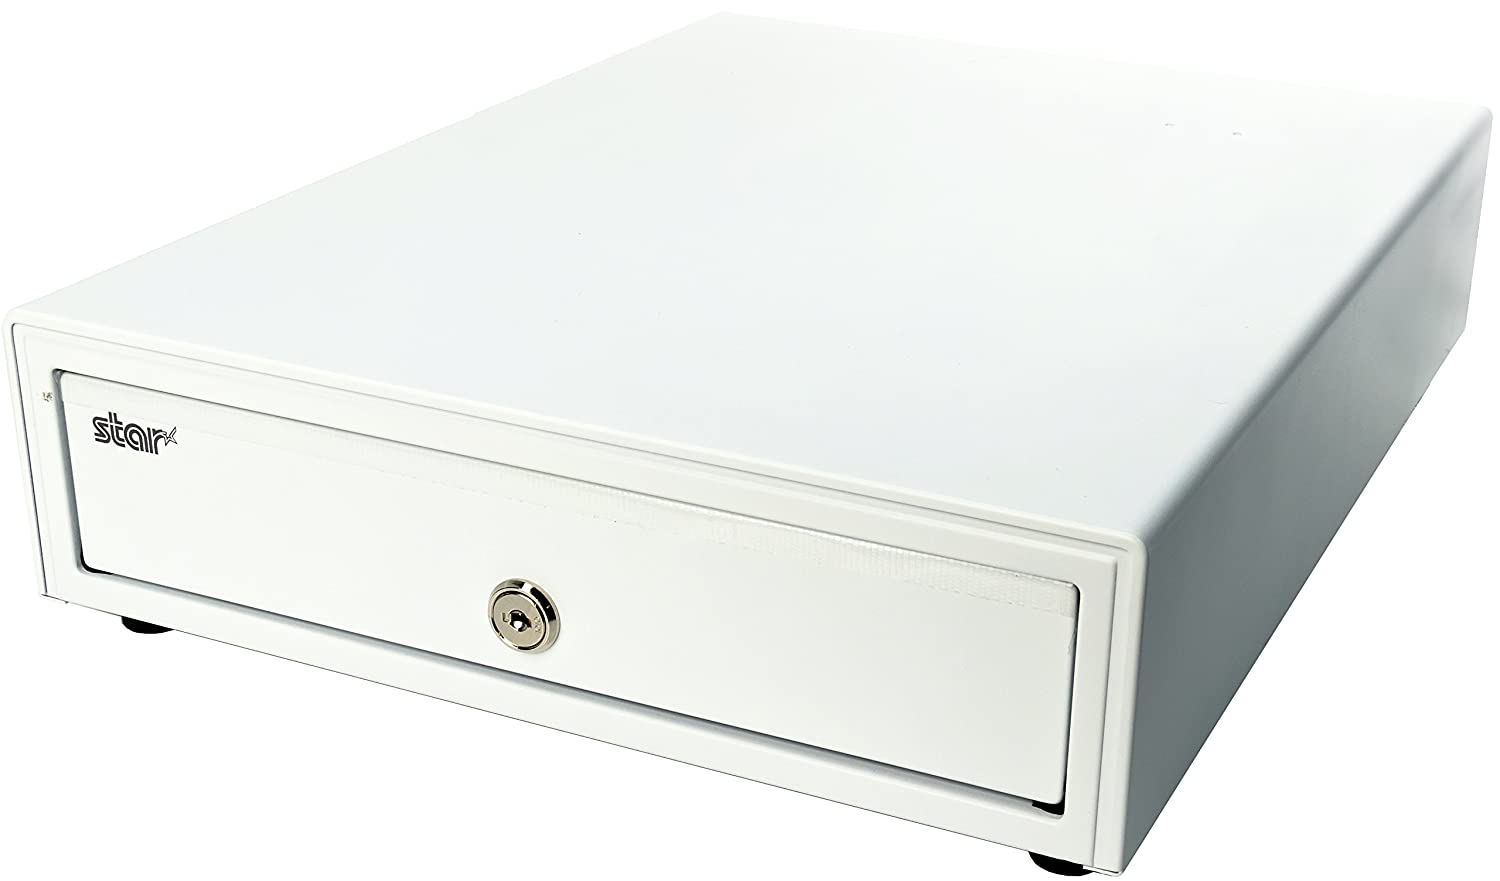 5 Coin Cash Drawer for Canadian Currency with Wi-Fi and Bluetooth Connectivity Black 13 x 17 Star Micronics SMD2-1317 Mobile 3 Bill